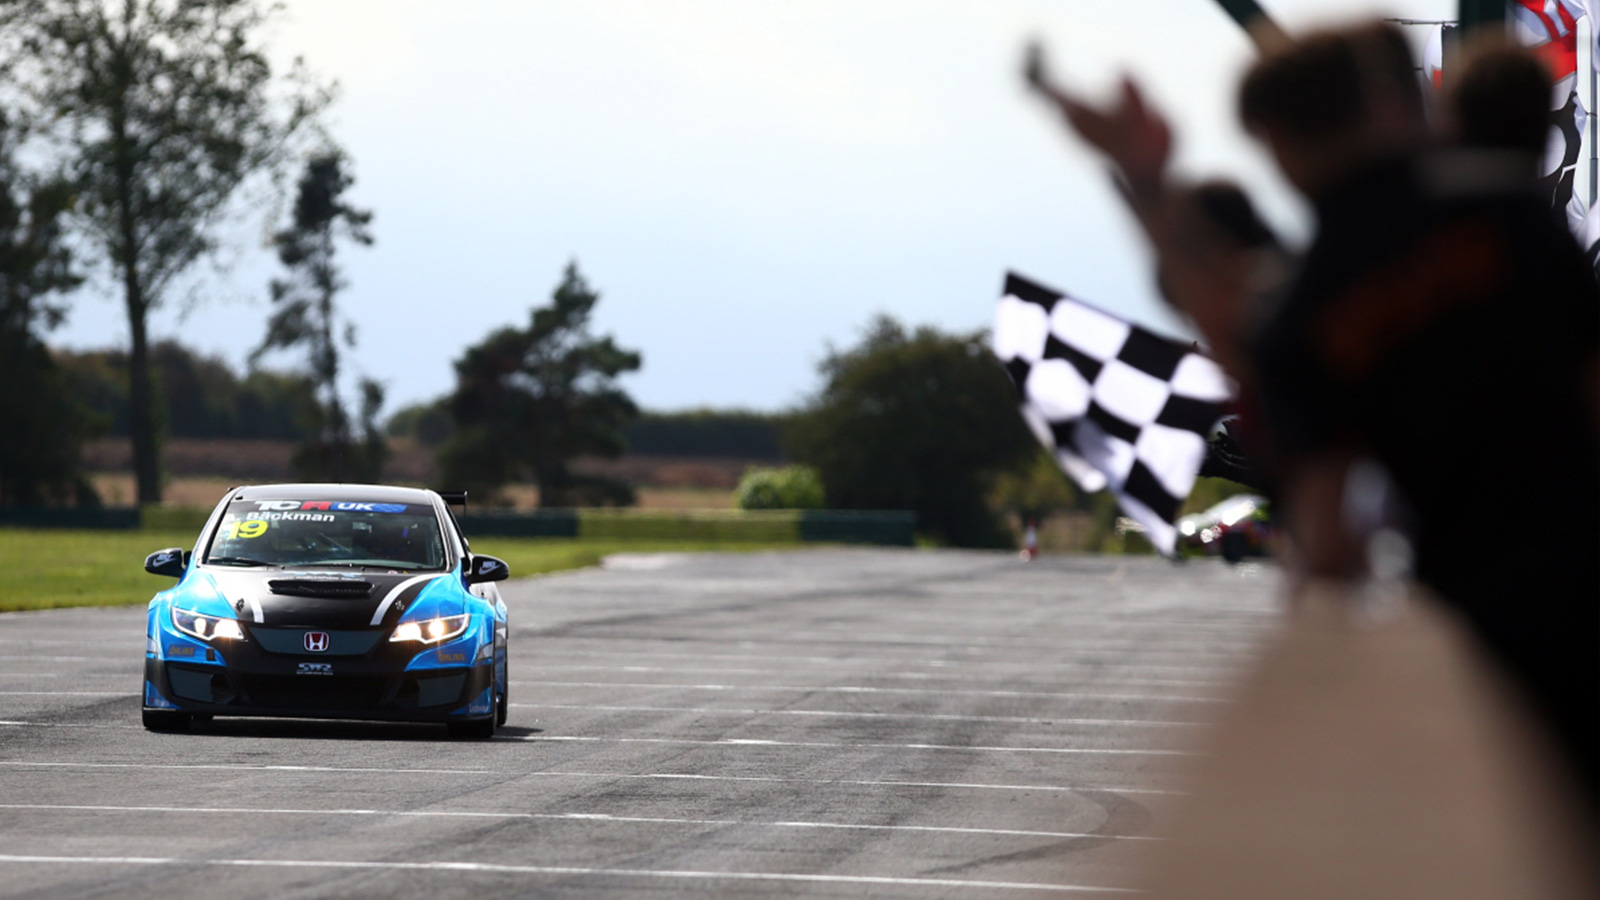 TCR UK to link-up with TCR Europe series for huge event in Belgium.